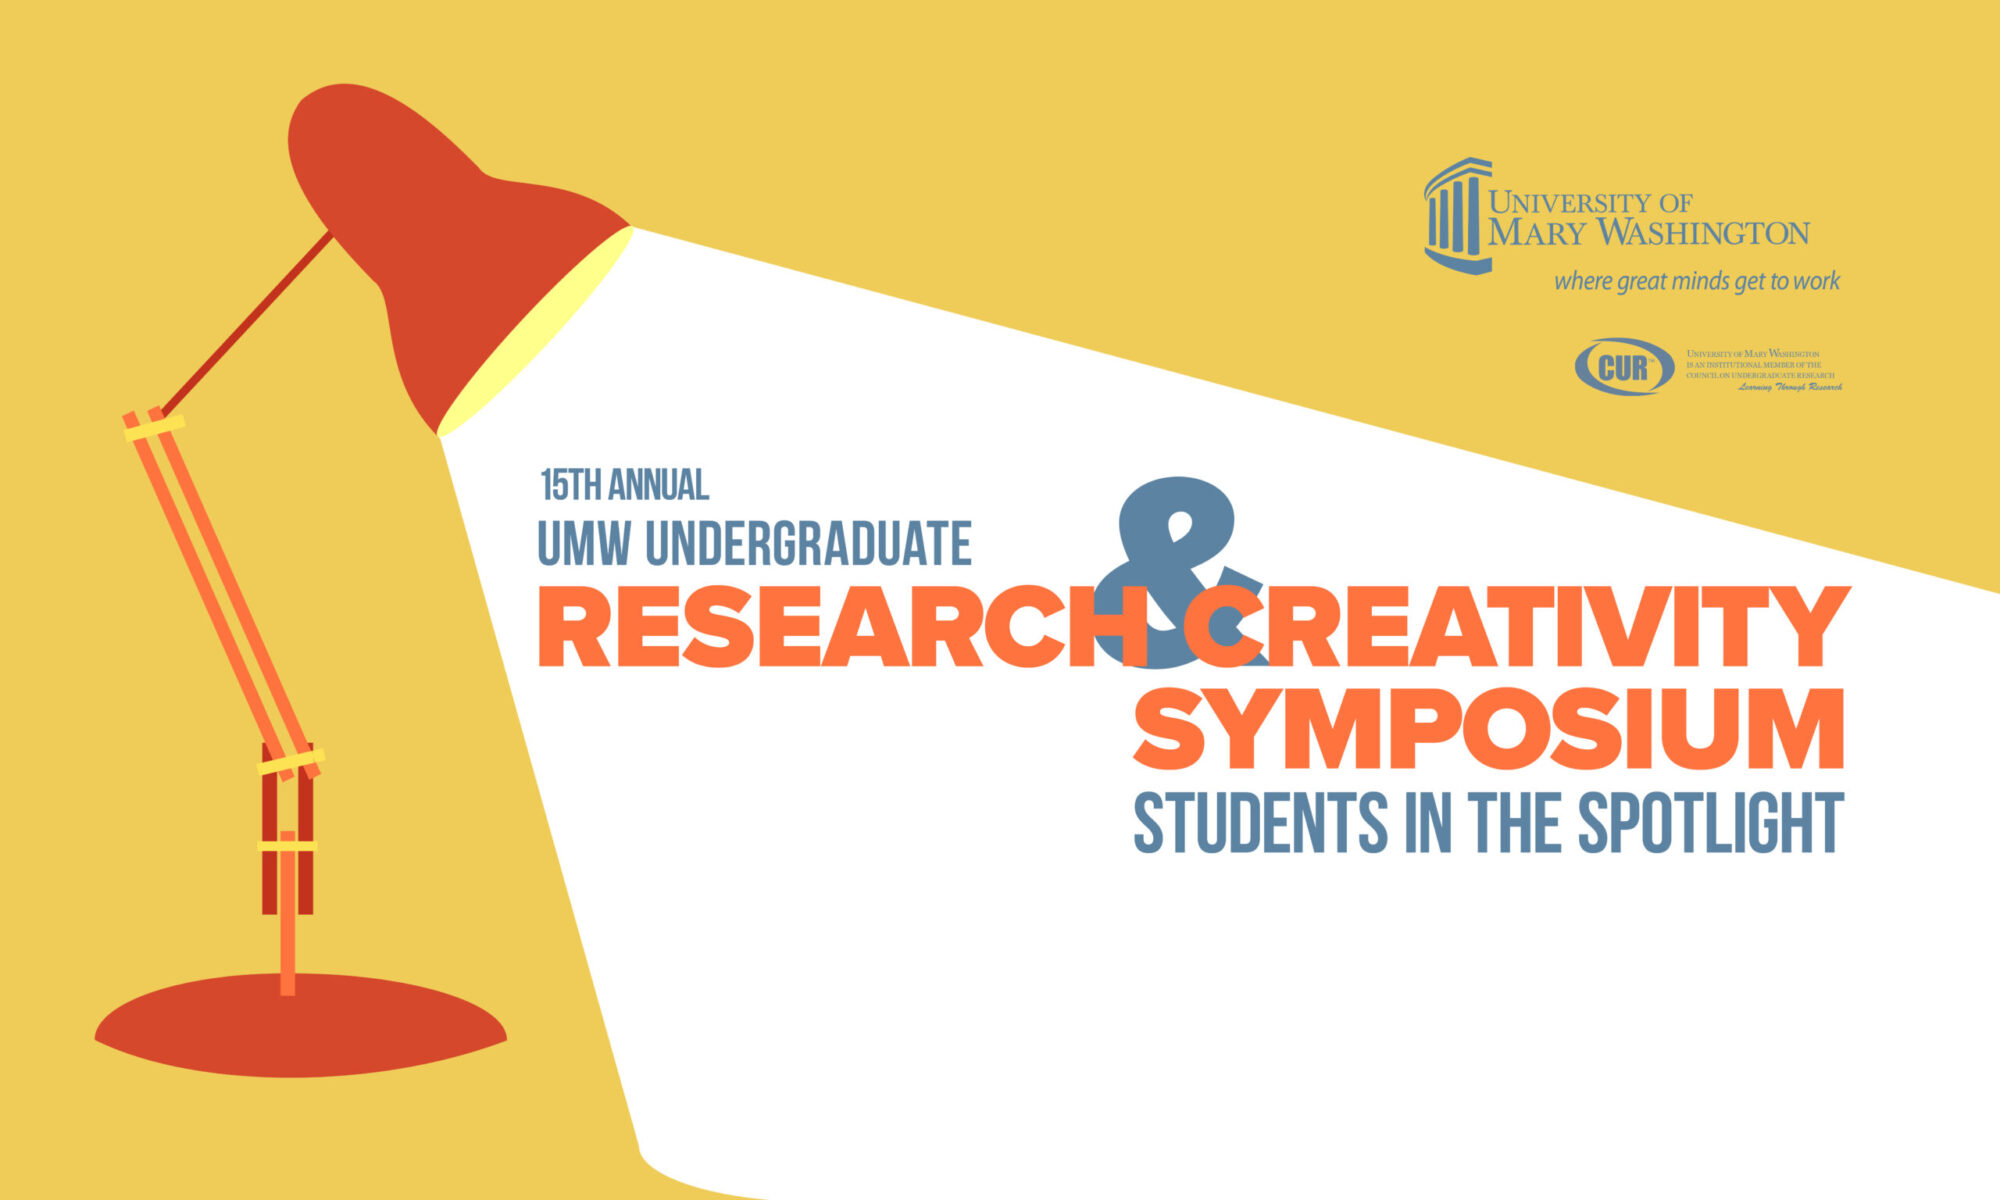 UMW Undergraduate Research and Creativity